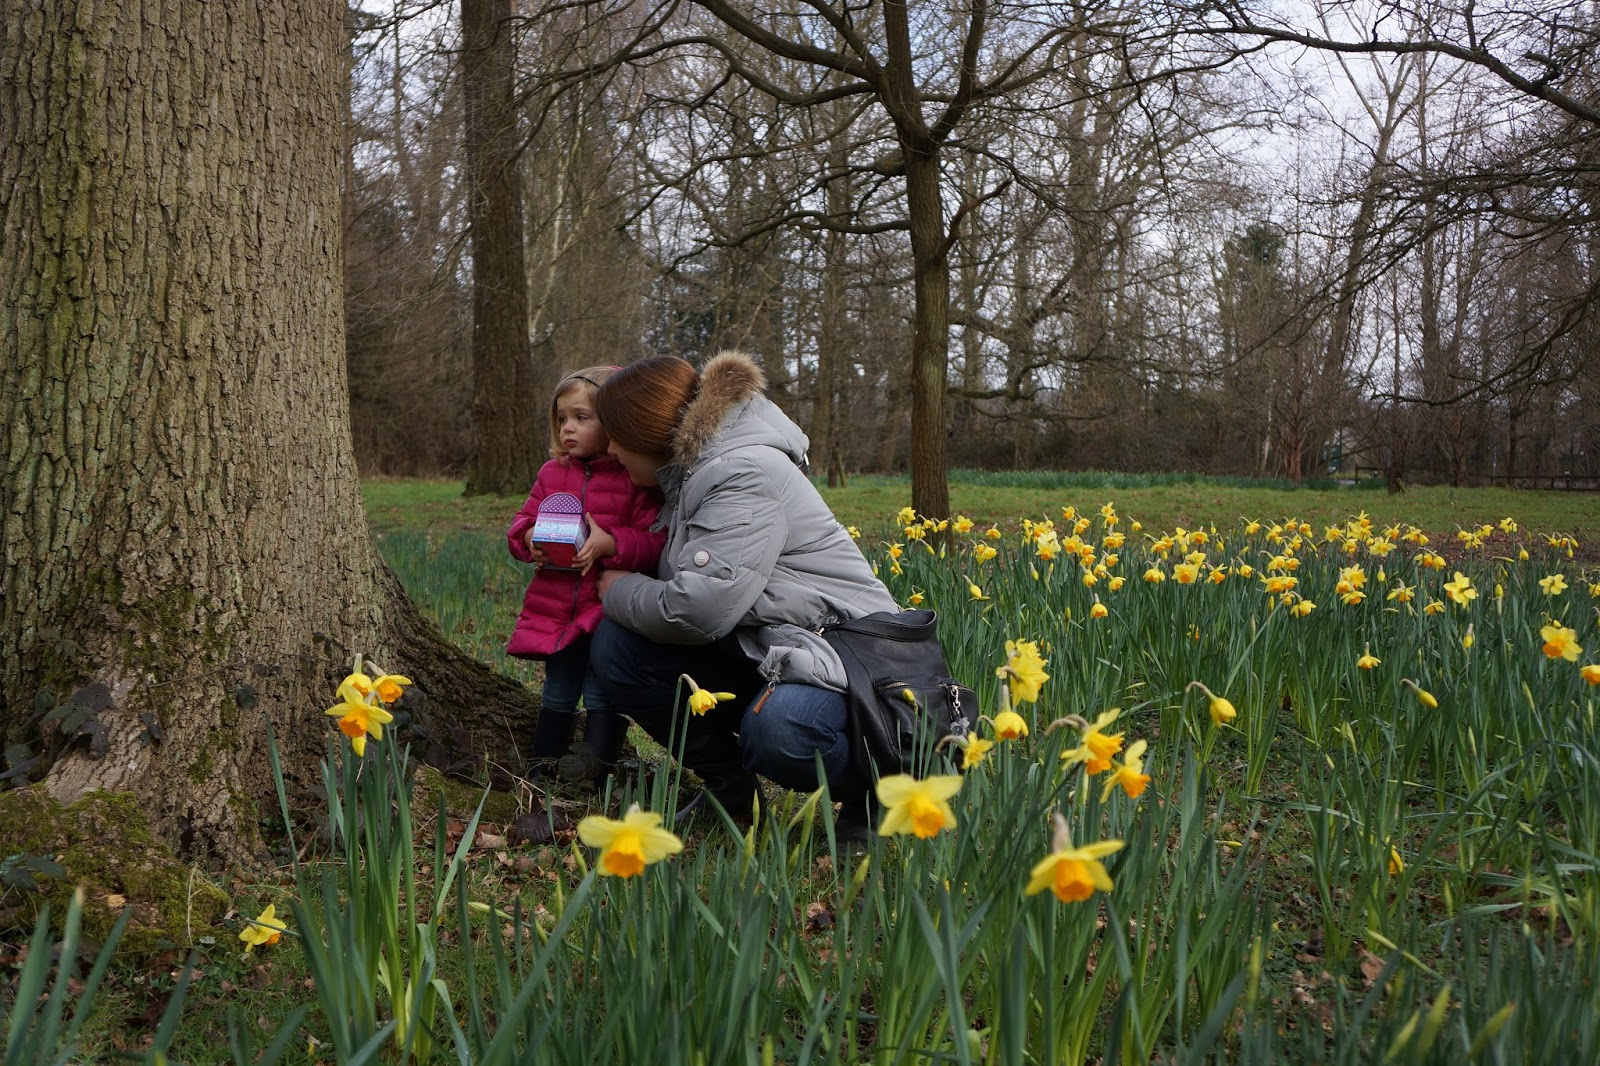 mother and daughter in a field of yellow flowers